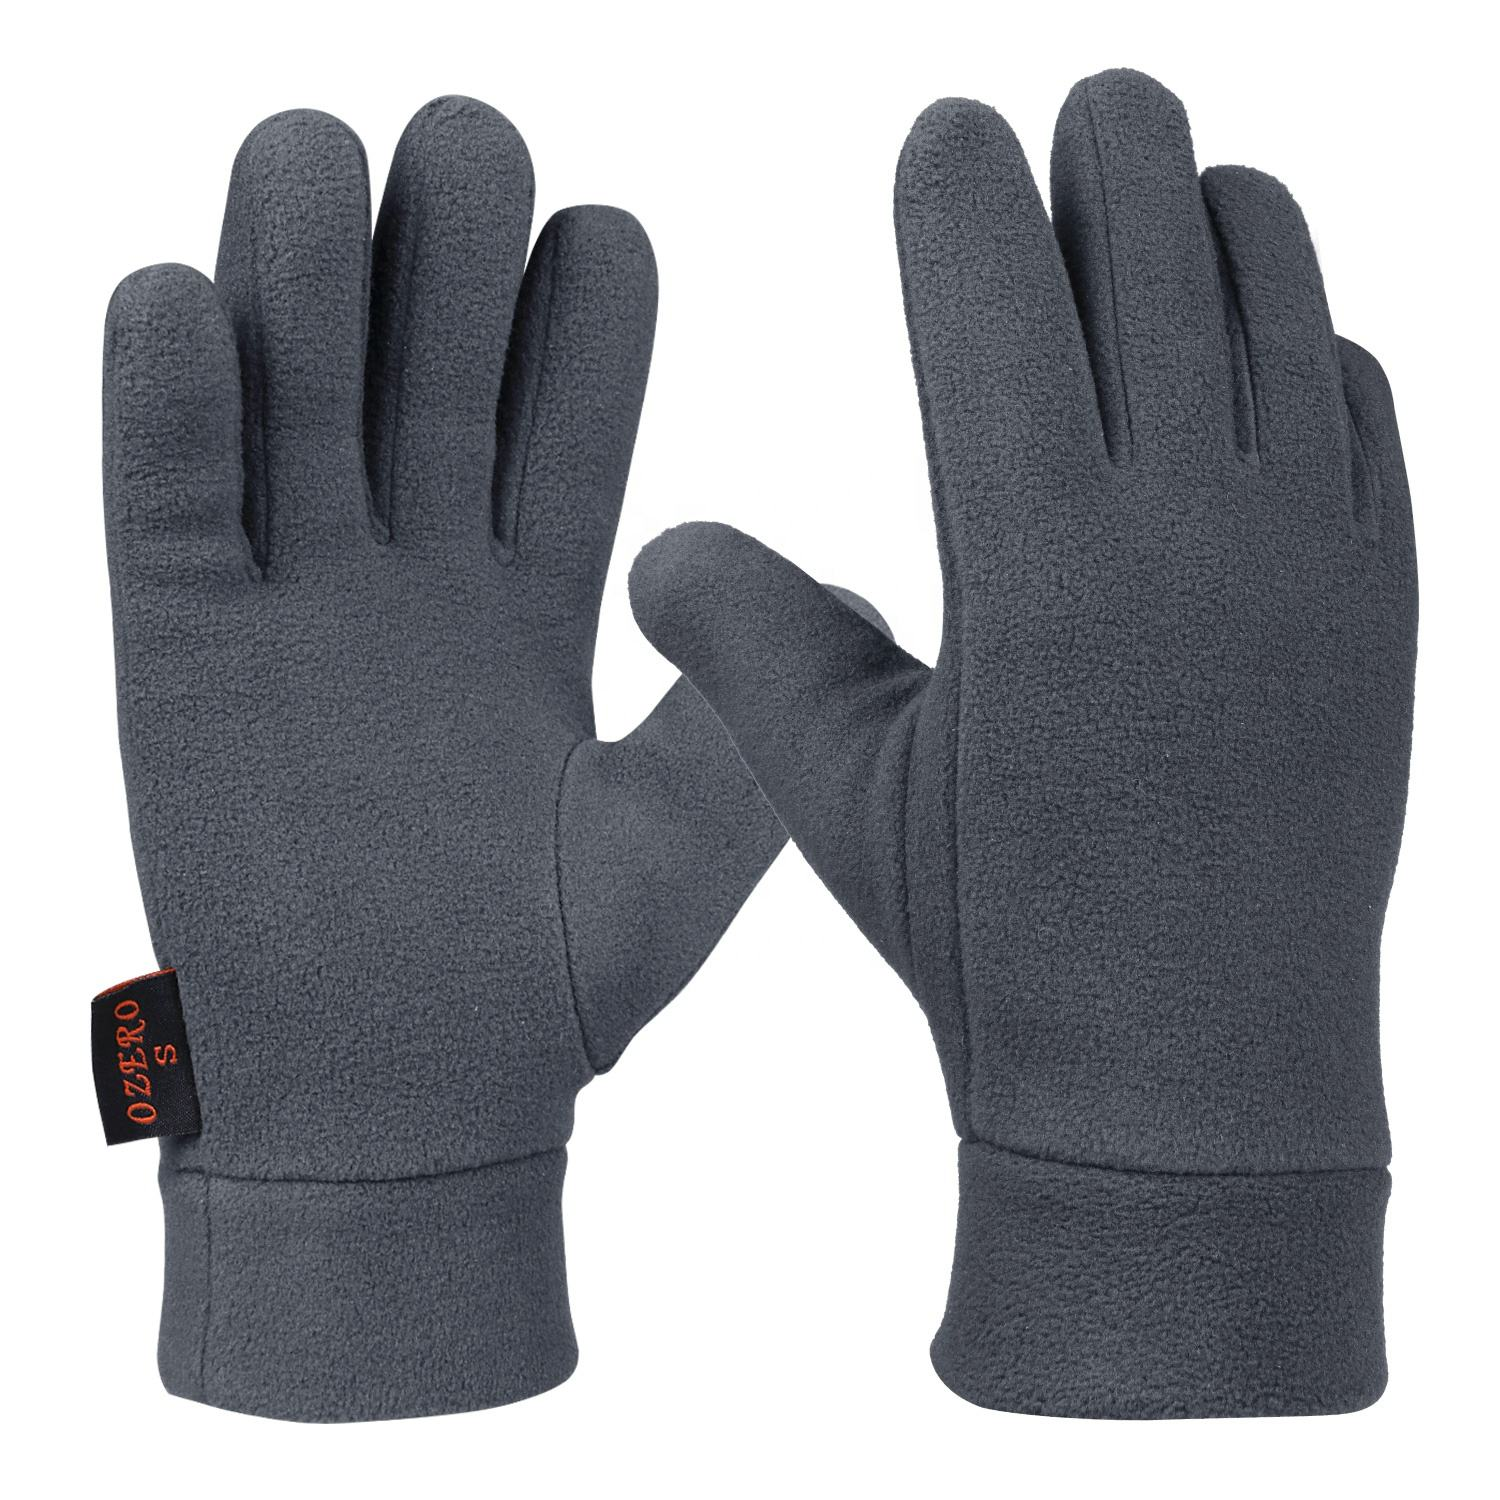 Ozero 100% Polar Fleece Thermal Winter Hand Wears Gloves For Cold Weather Driving Hiking Snowing Running Cycling .